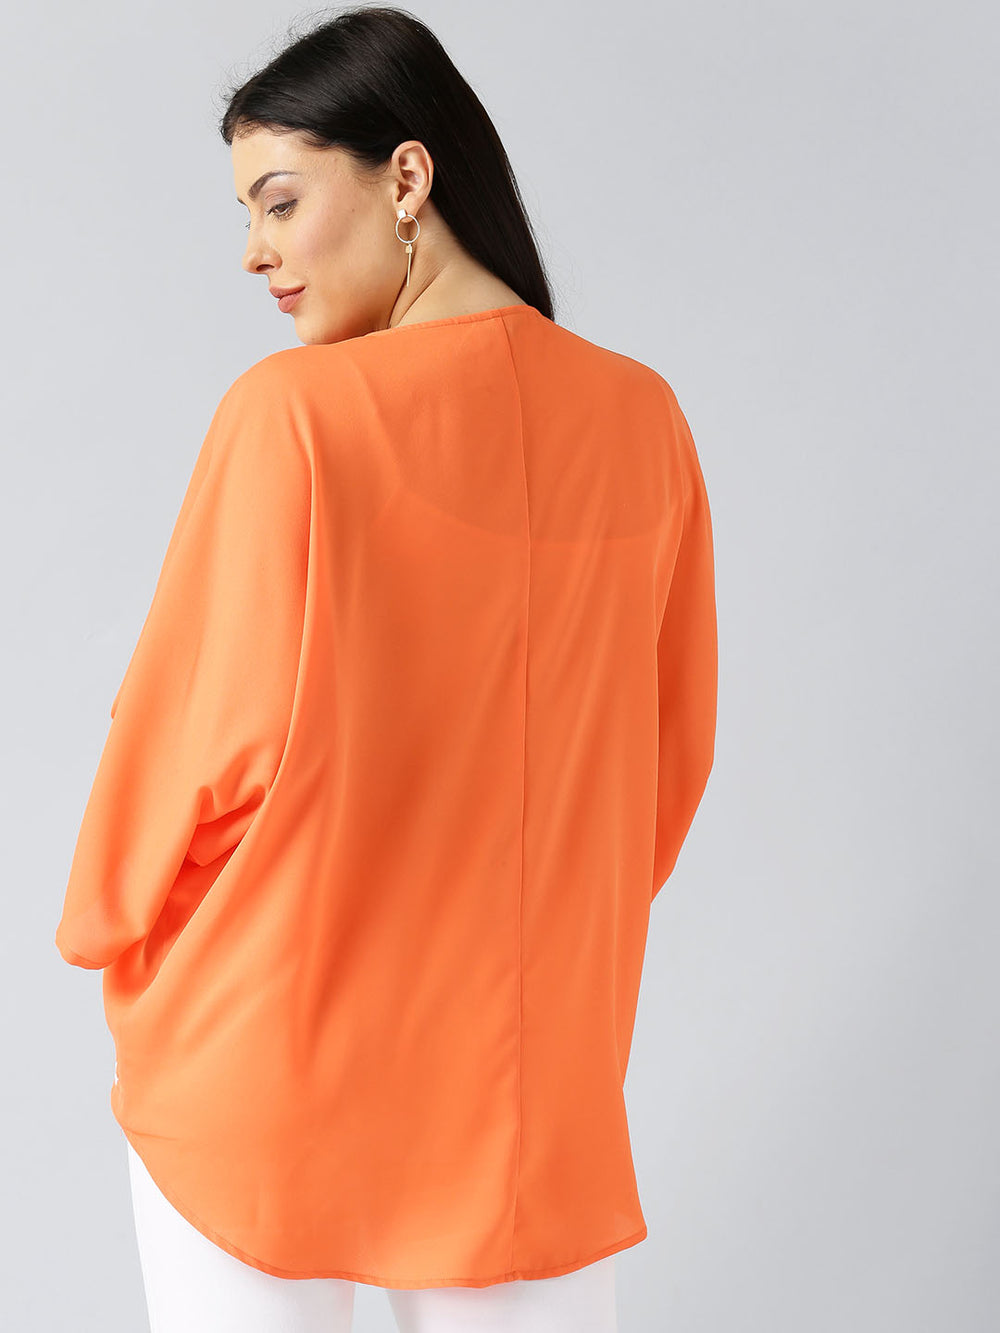 Besiva Orange Solid Open Front Shrug